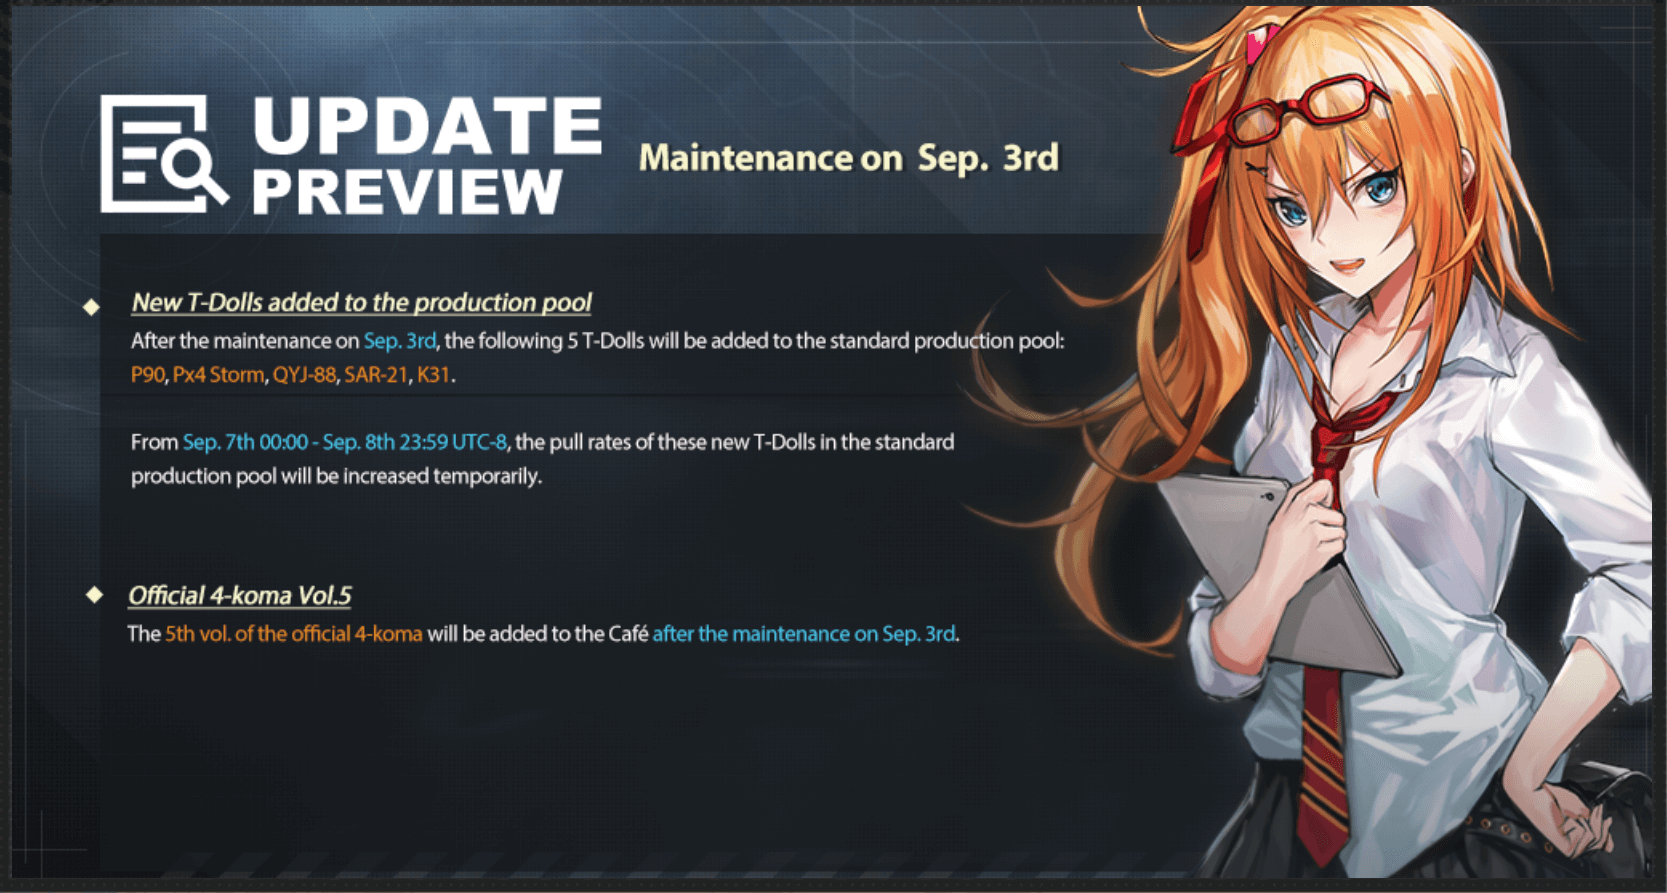 Update Preview and maintenance notes for Girls Frontline September 3rd maintenance